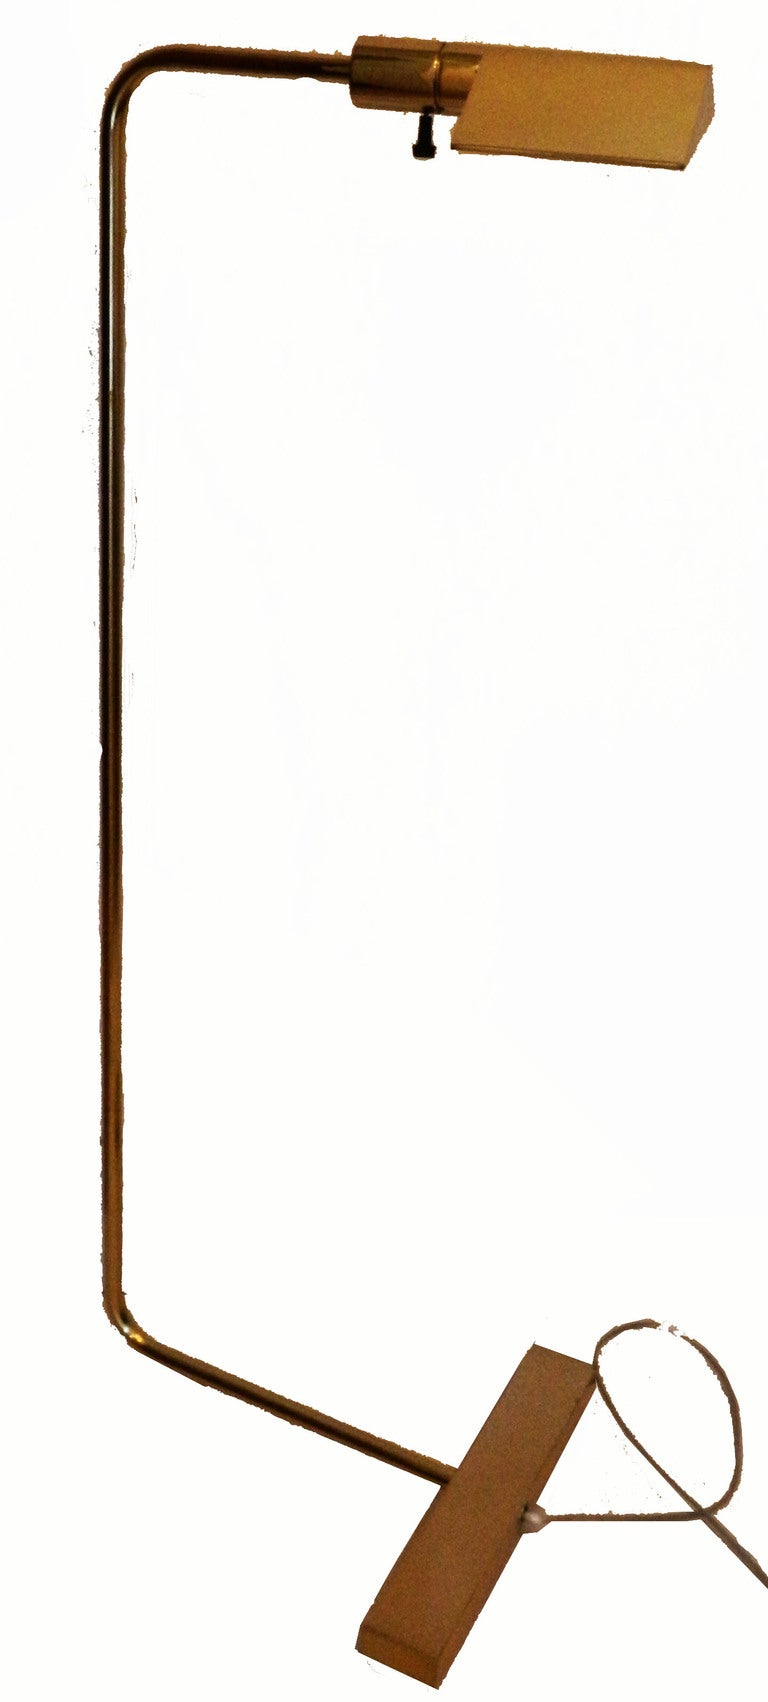 Exceptionnel pair of Floor lamp or table lamp by Cedric Hartman. 2 patina Brass and chrome. 100W/bulb US wired and in working condition.